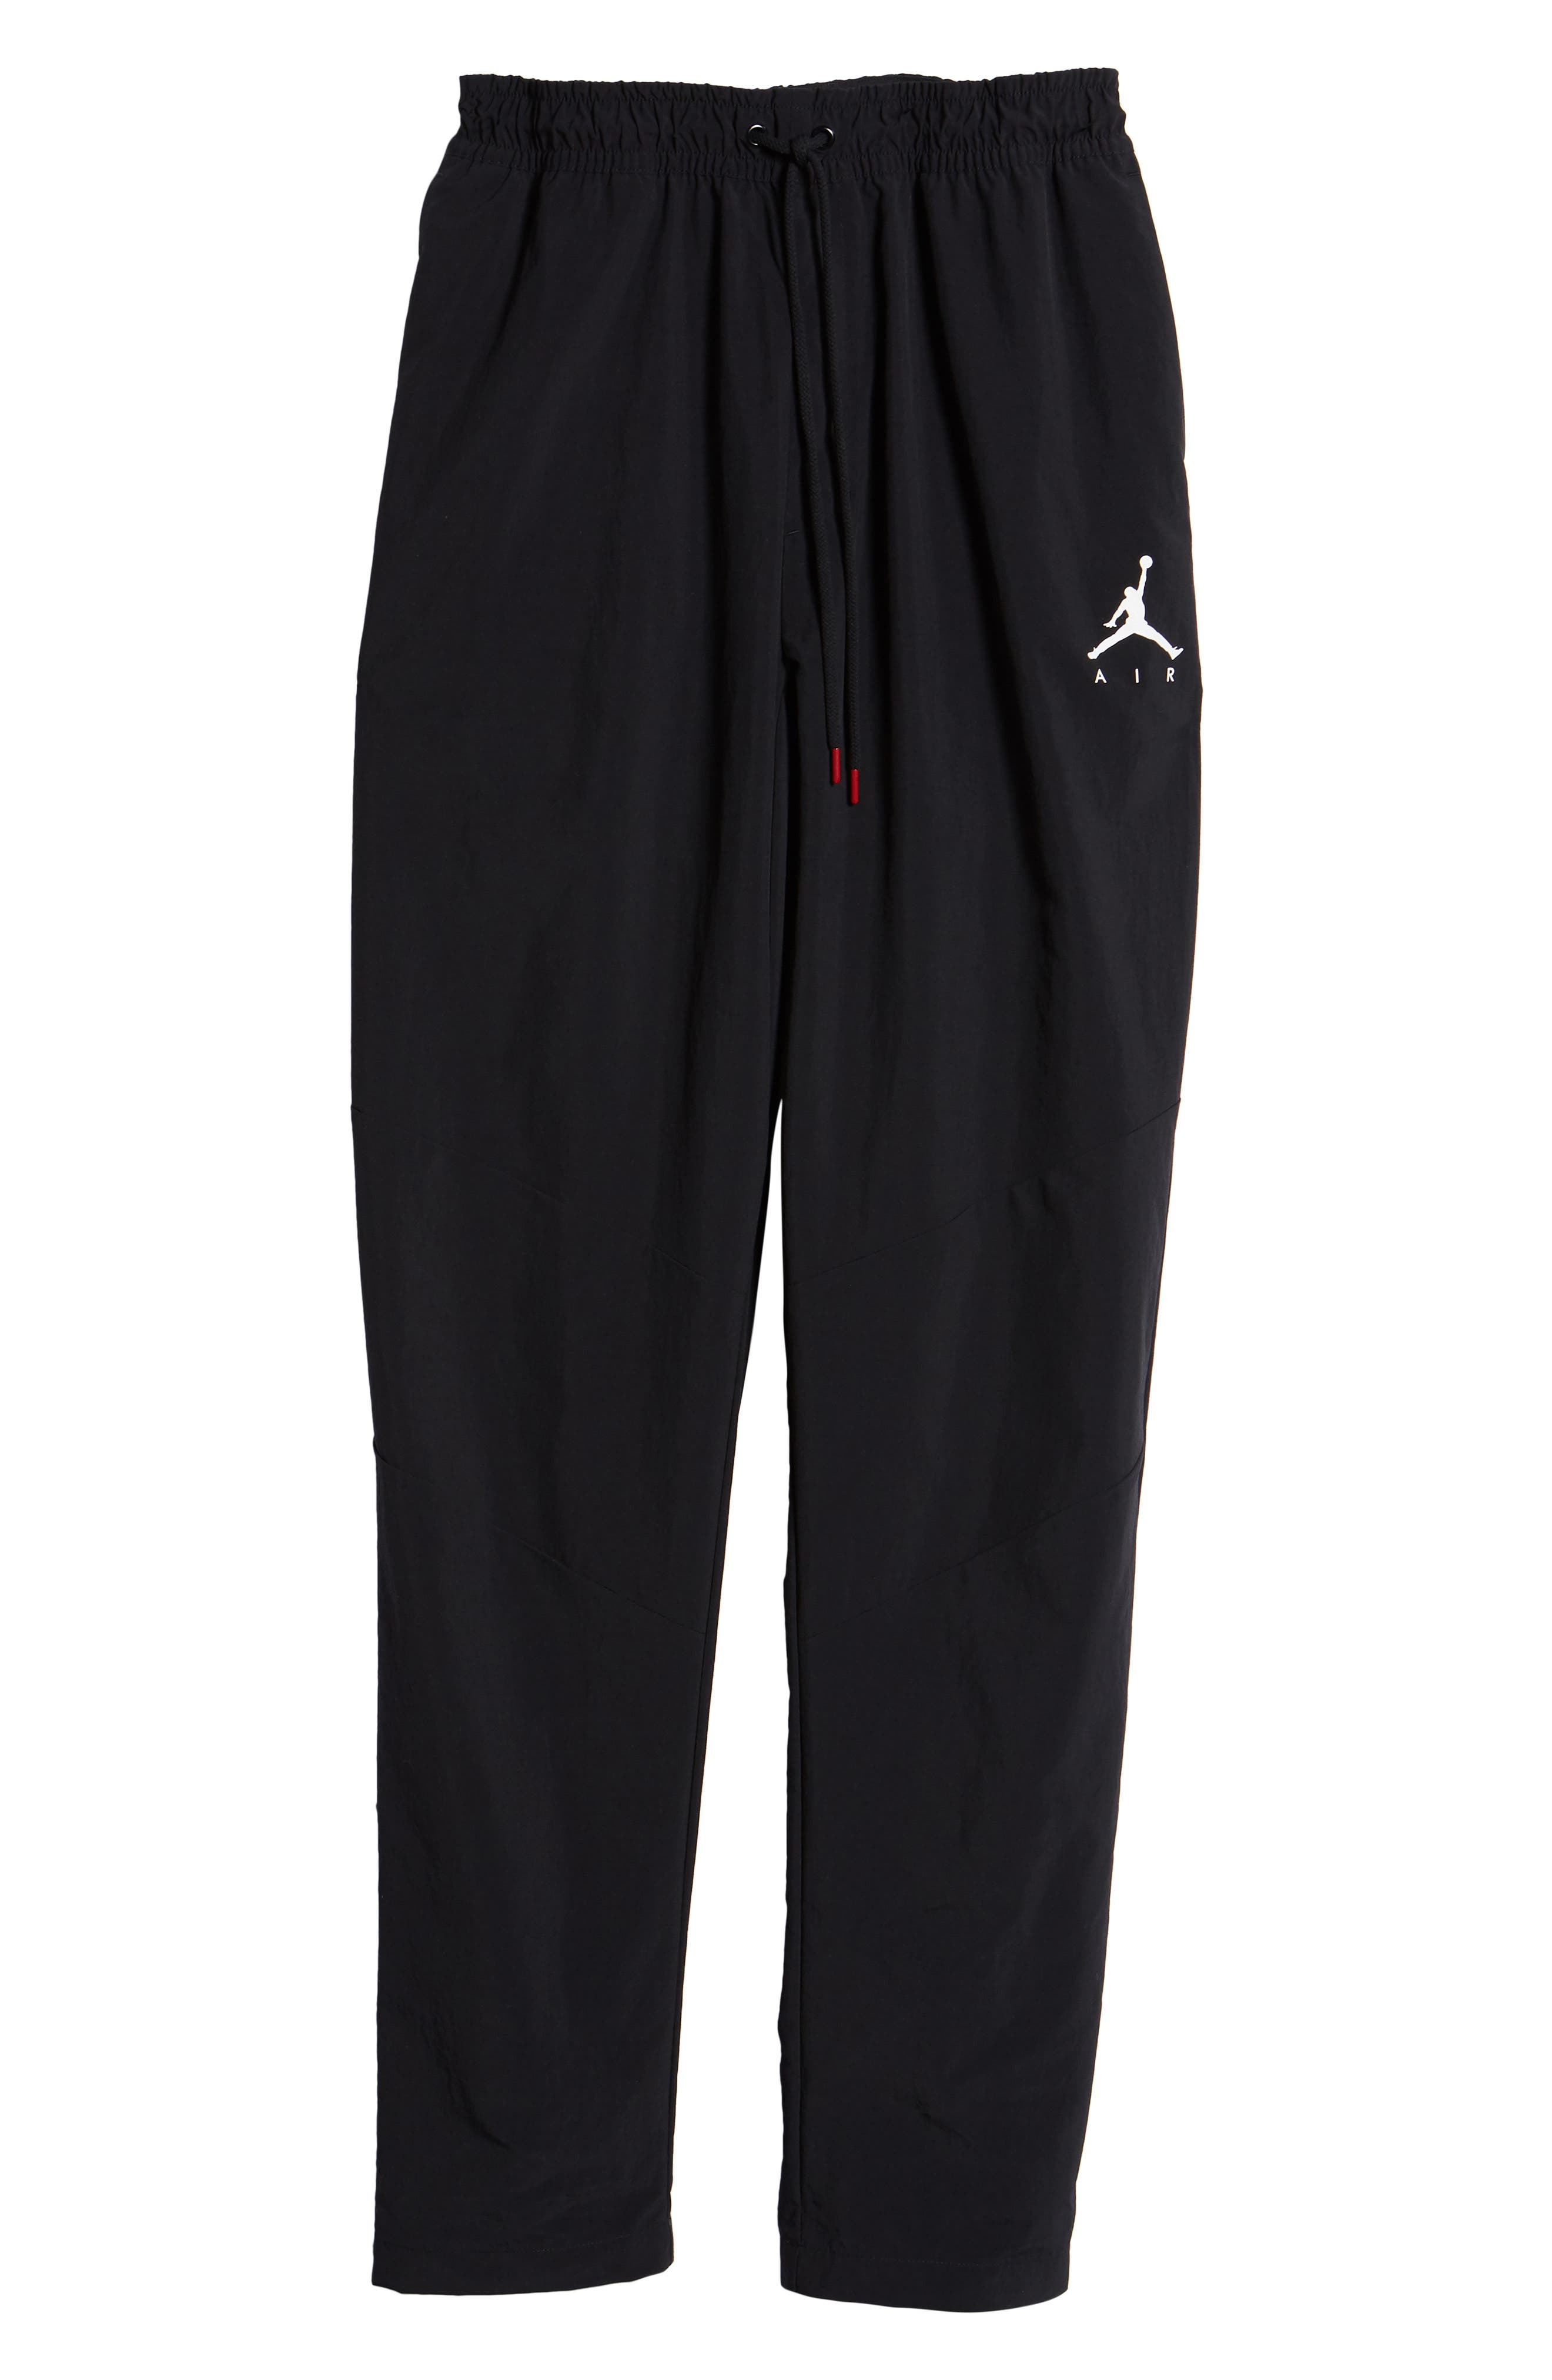 Jordan Jumpman Woven Pants,                             Alternate thumbnail 6, color,                             BLACK/ WHITE